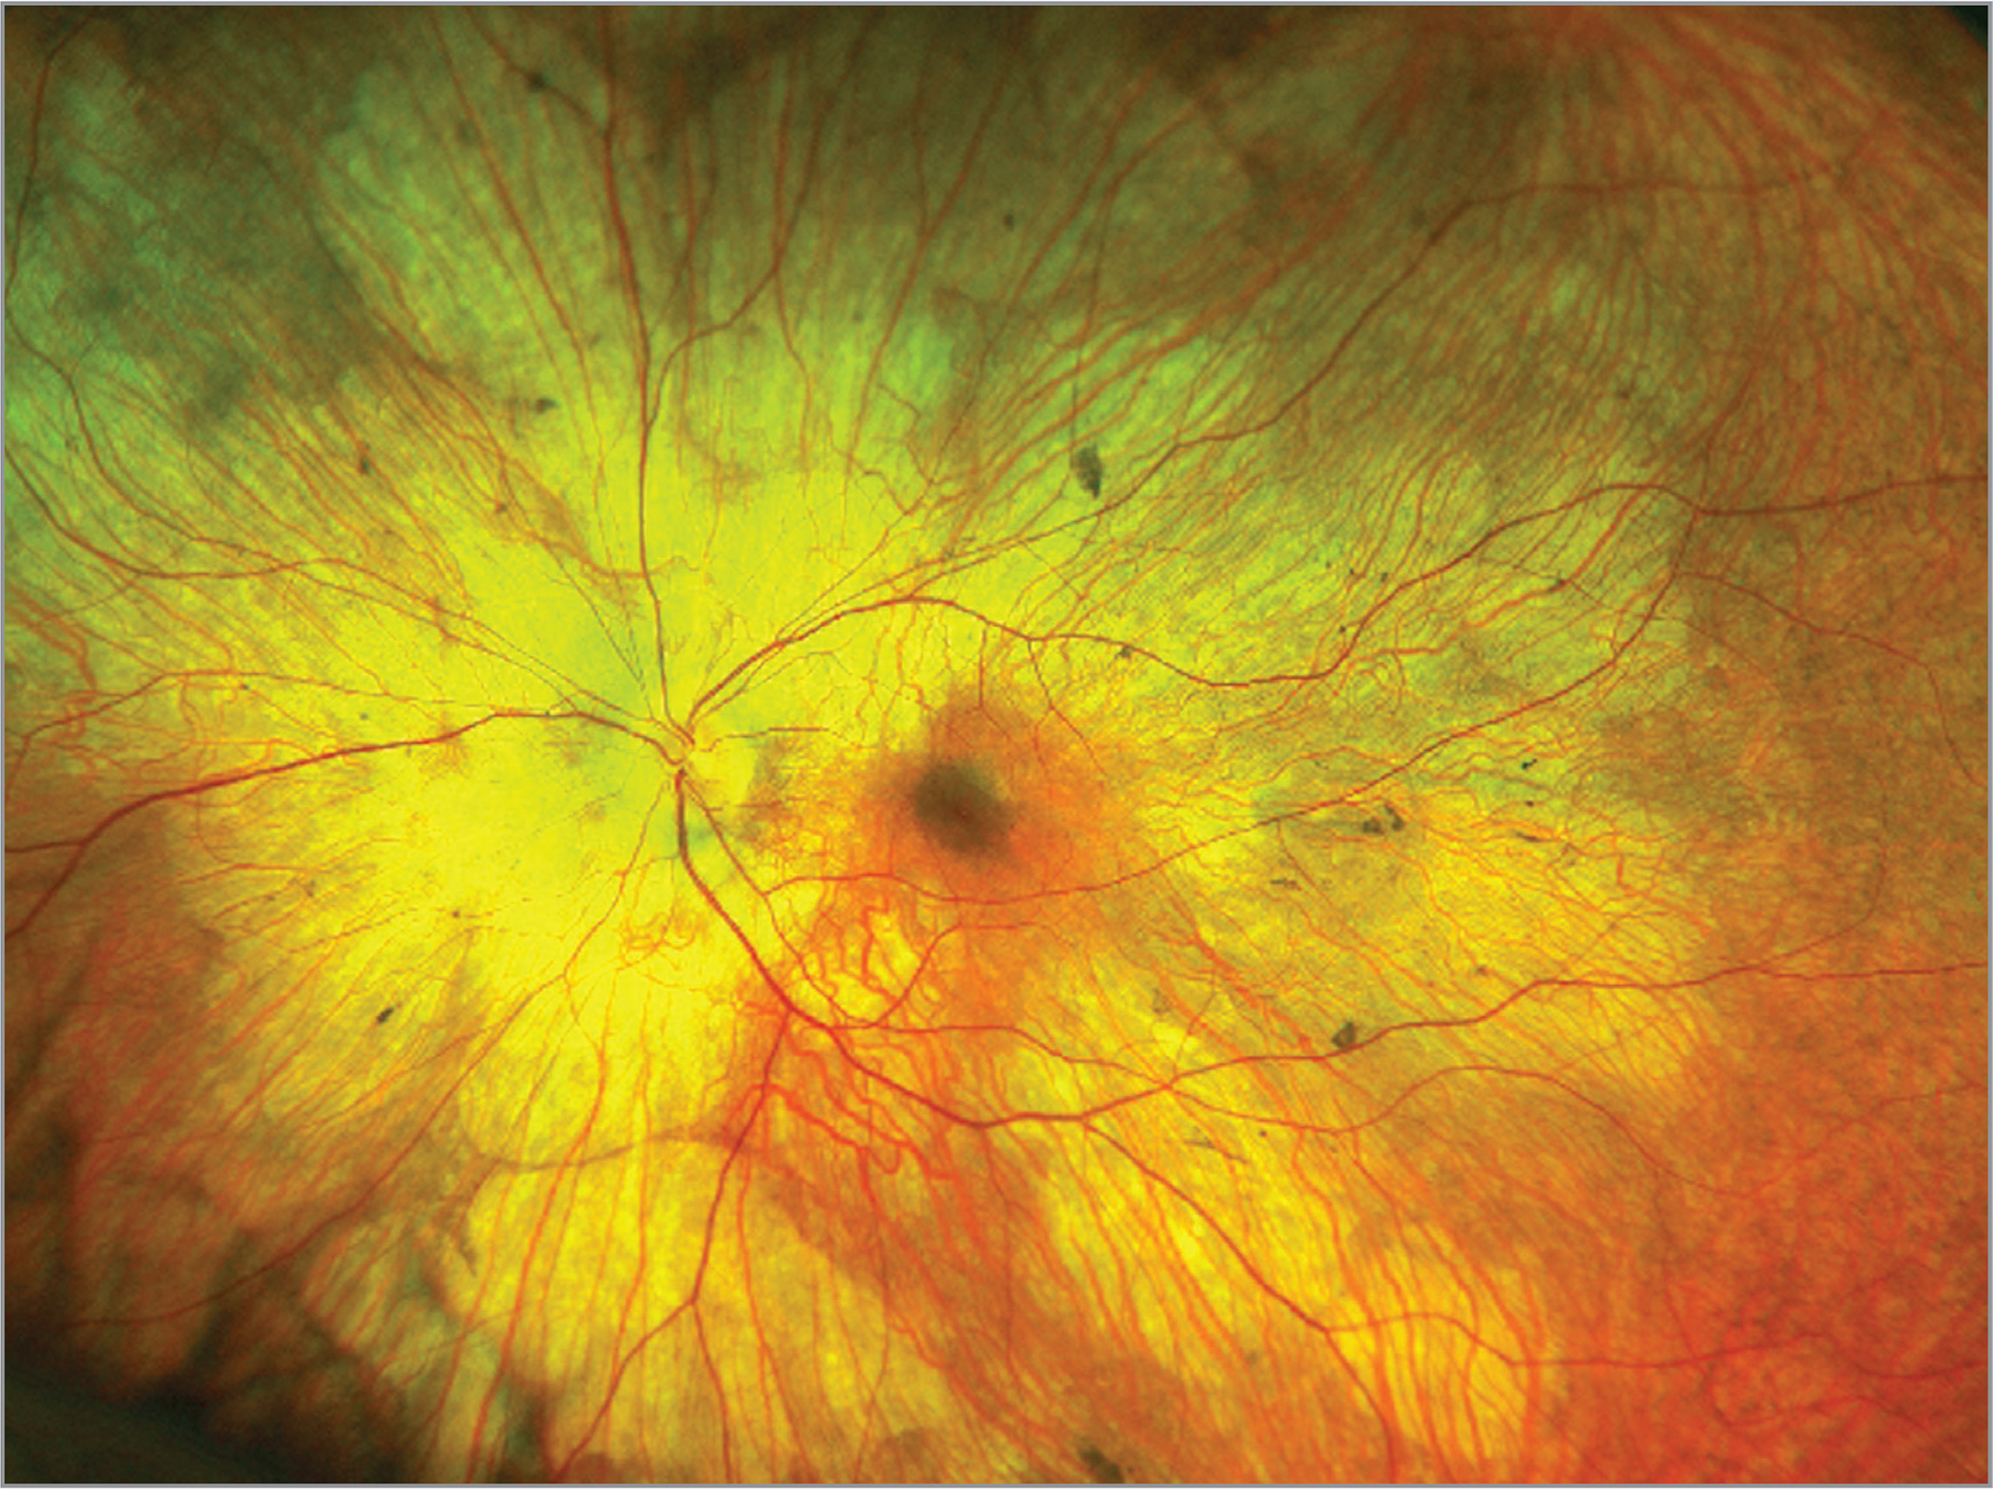 Fundus widefield photo of the left eye of a male with choroideremia. The fundus shows scalloped areas of chorioretinal atrophy and pigment clumping with relative preservation of the central macula.